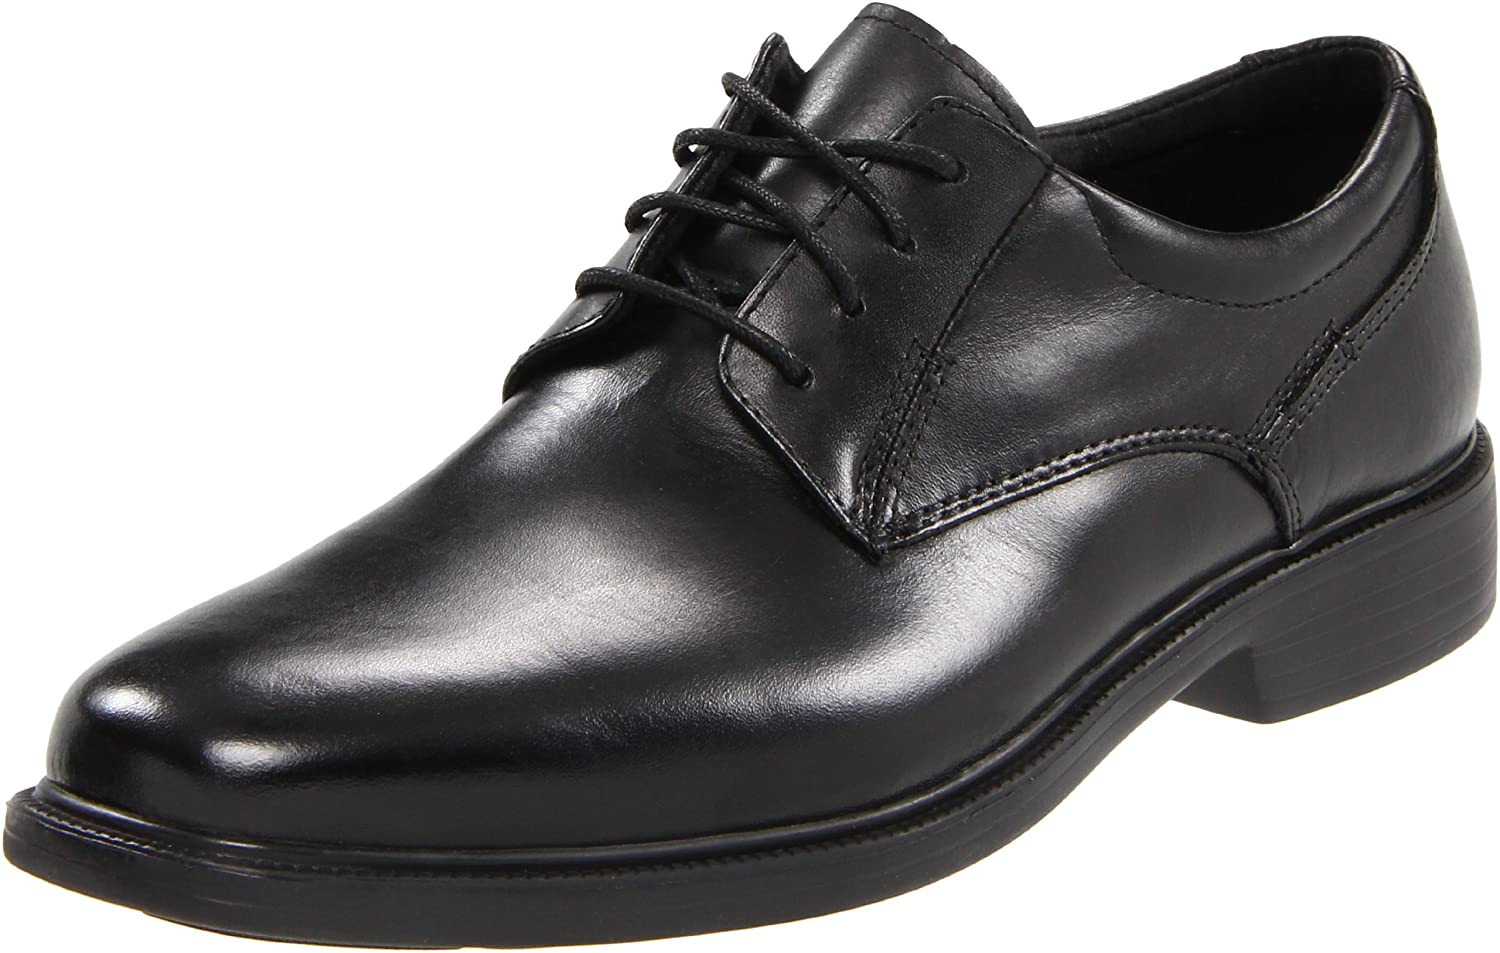 119af06ad31c bostonian shoes for sale   OFF46% Discounts